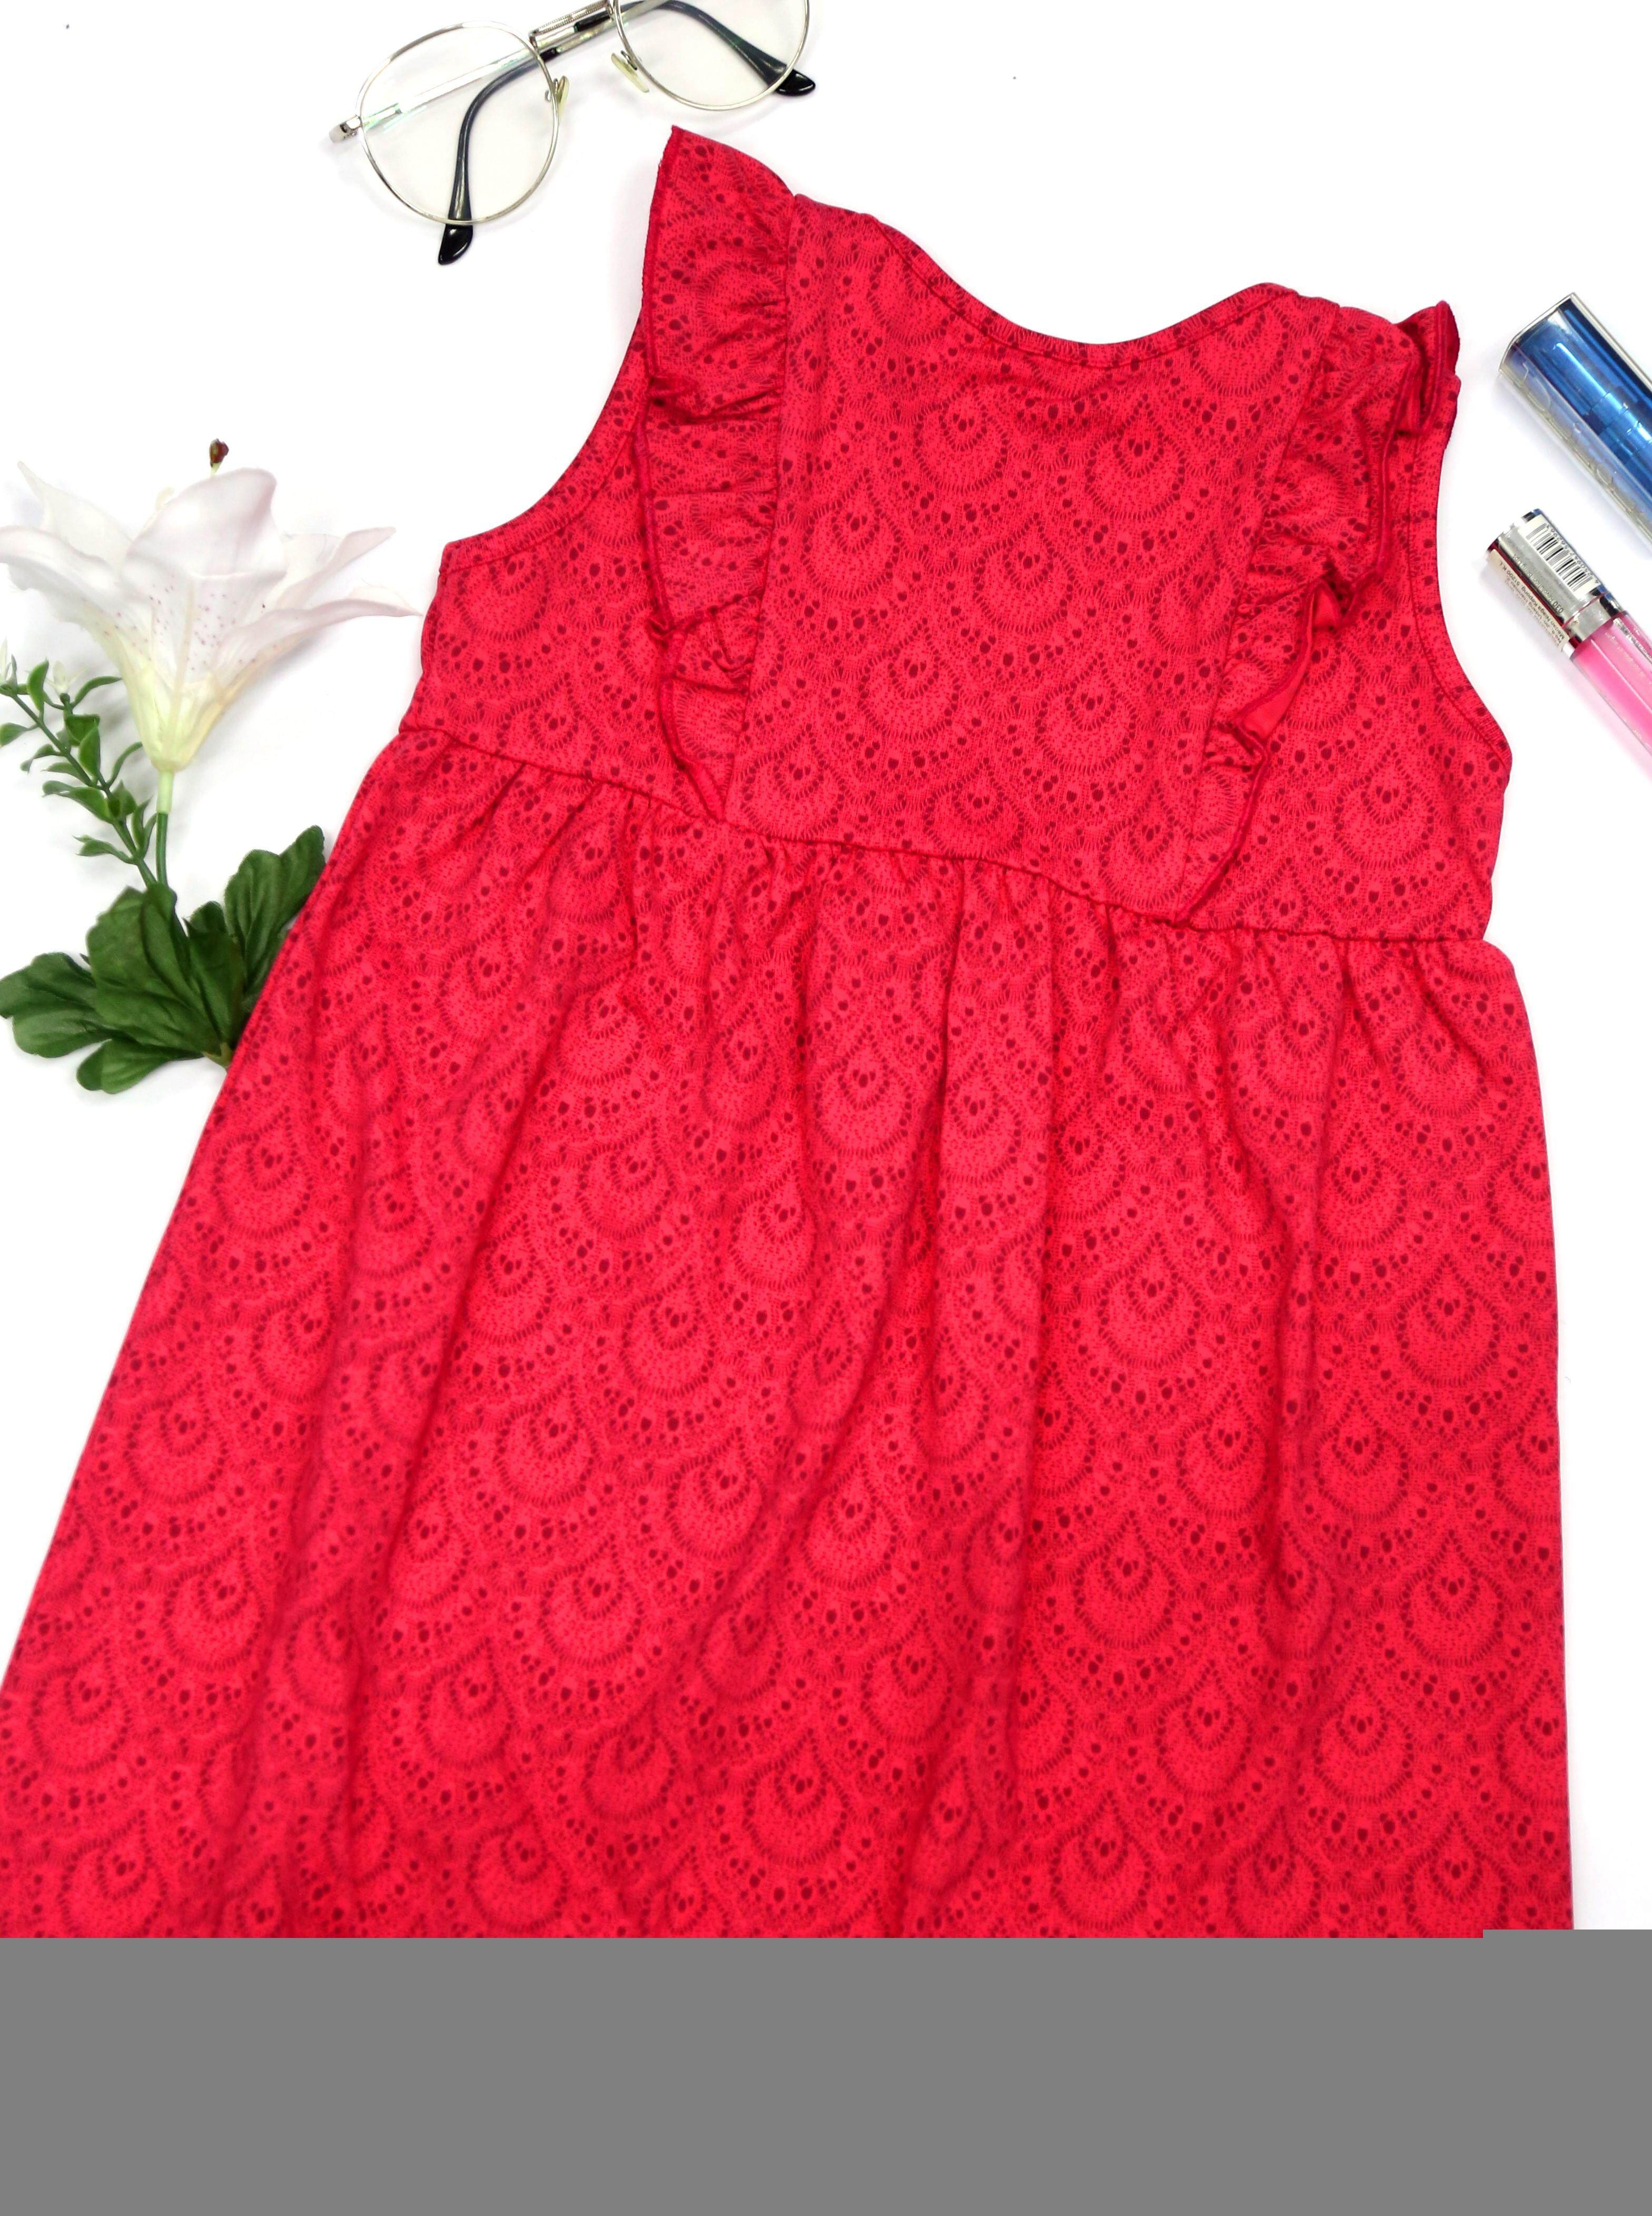 Supersun Toddler Girl Sleeveless Dress Ruffles Summer Fashion Clothes GD-30 Pink